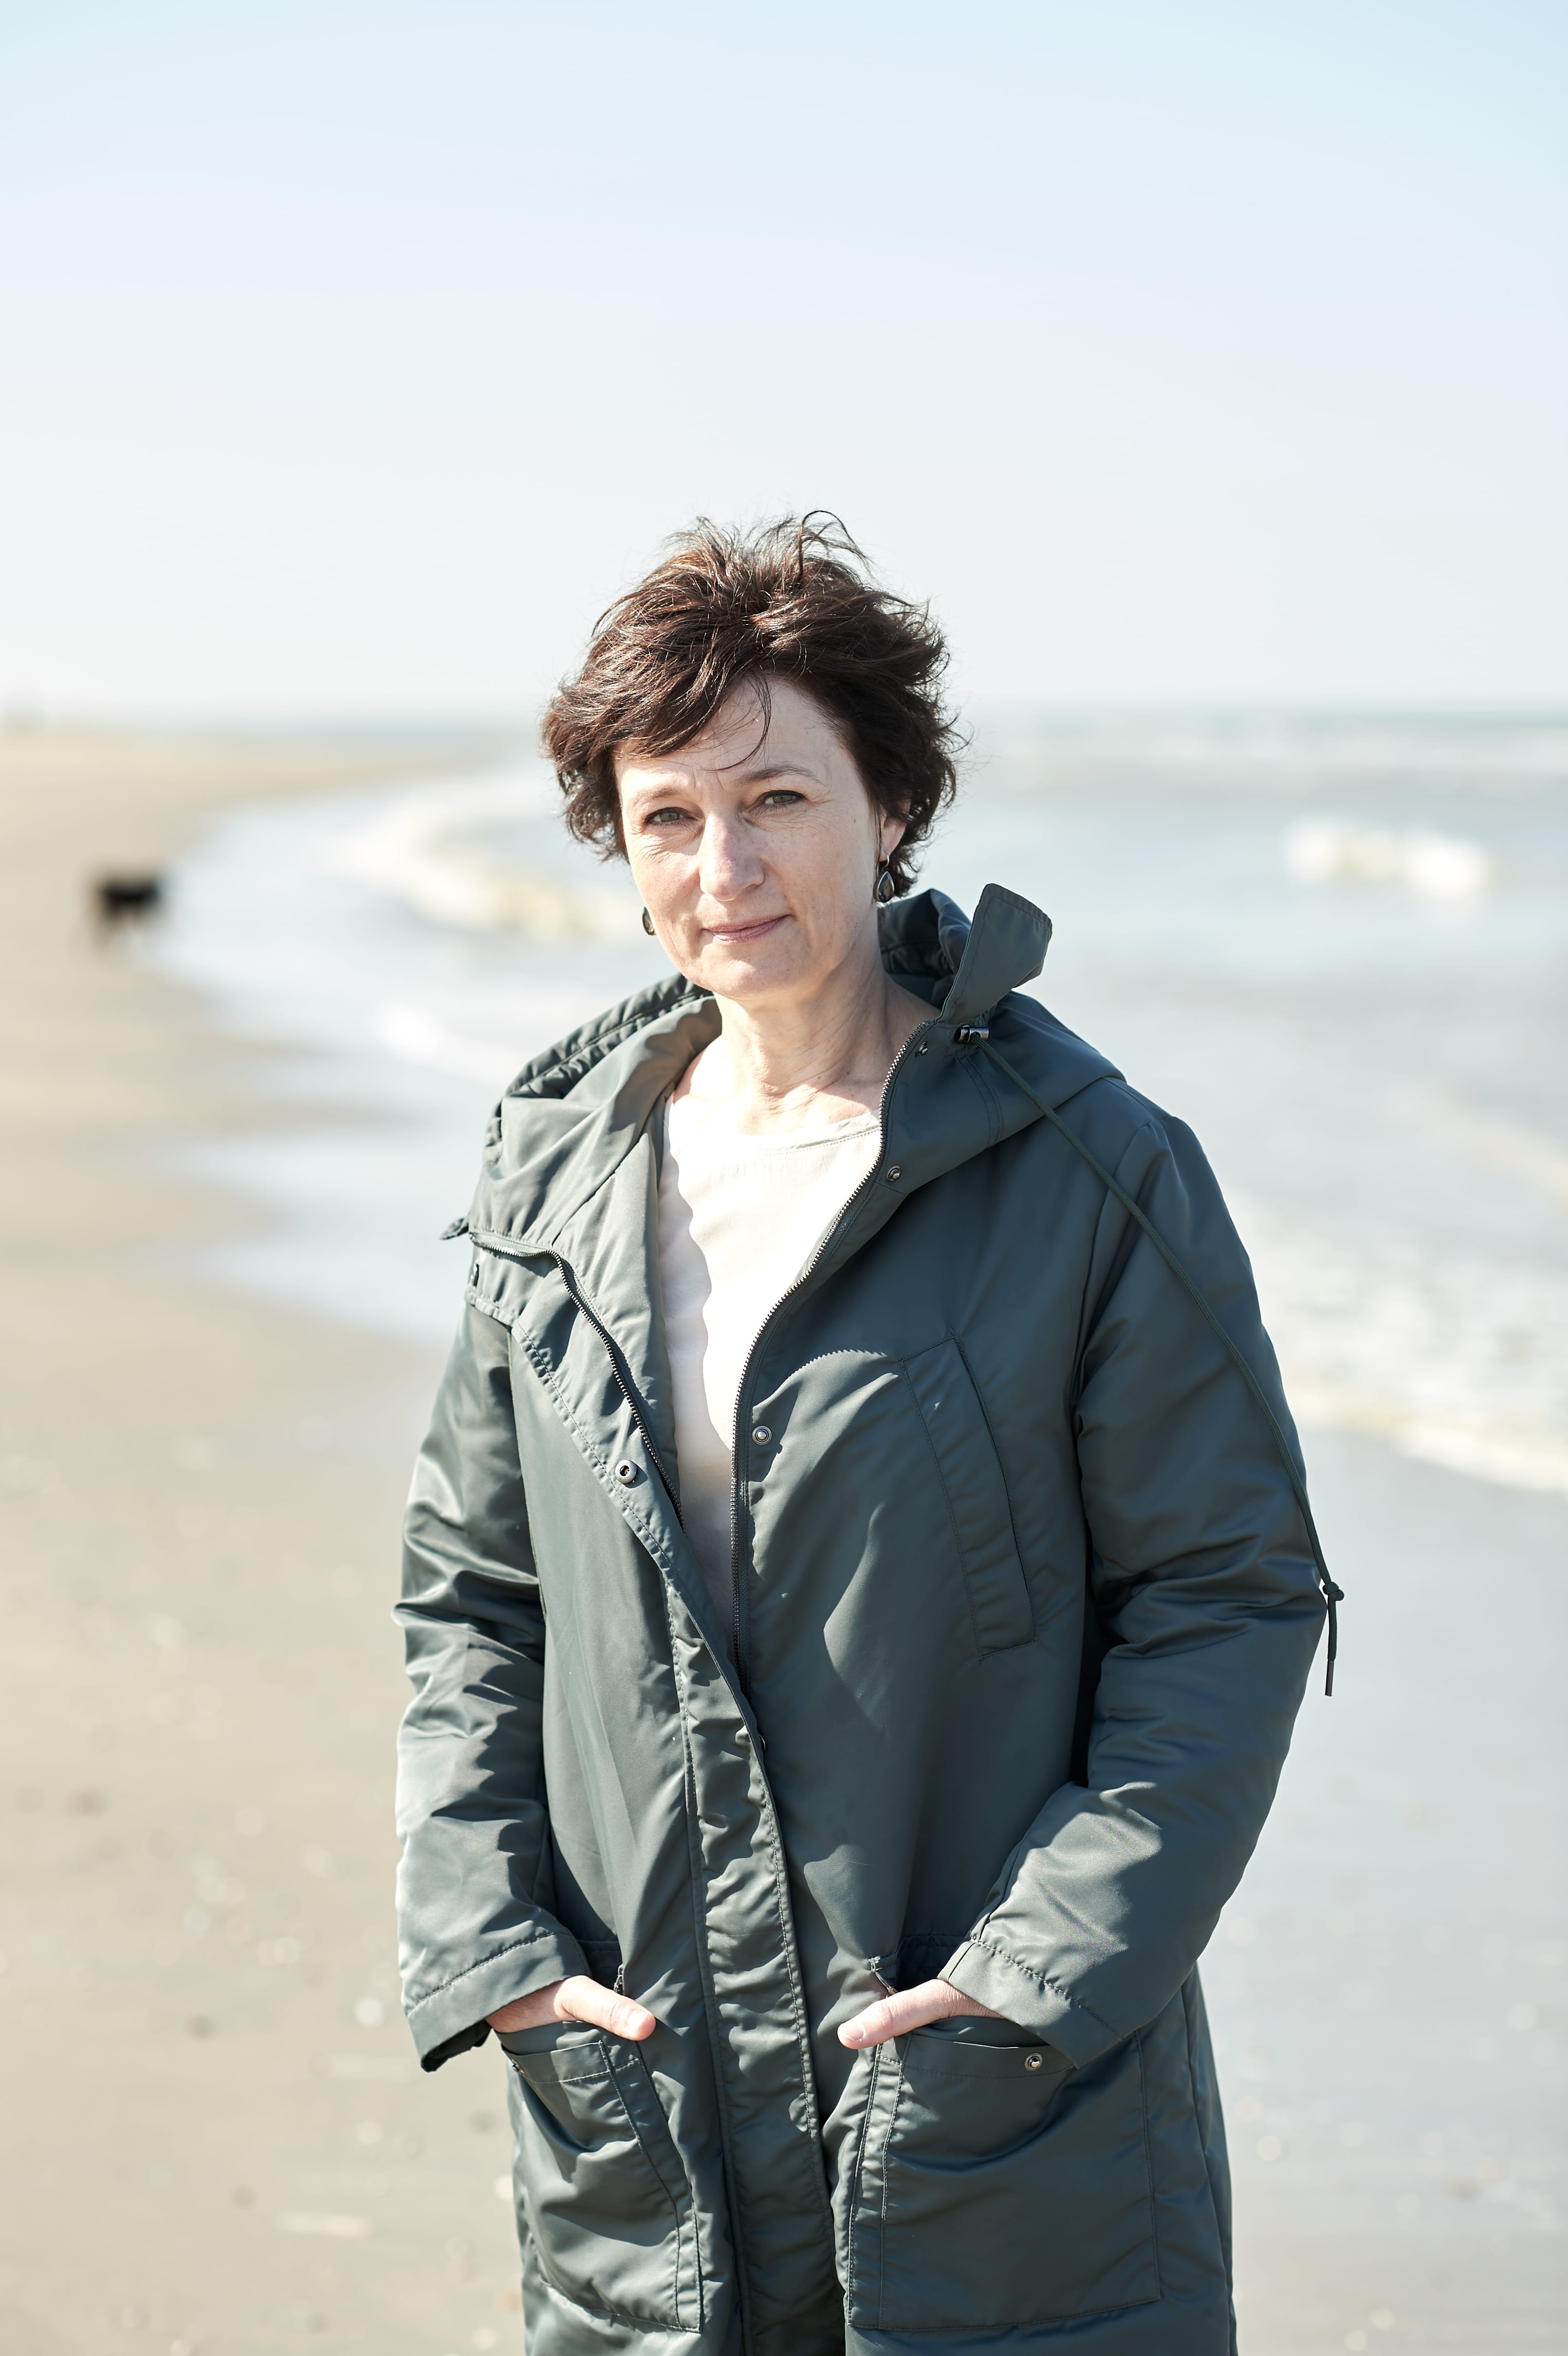 Marit Wisselink, Coach and trainer